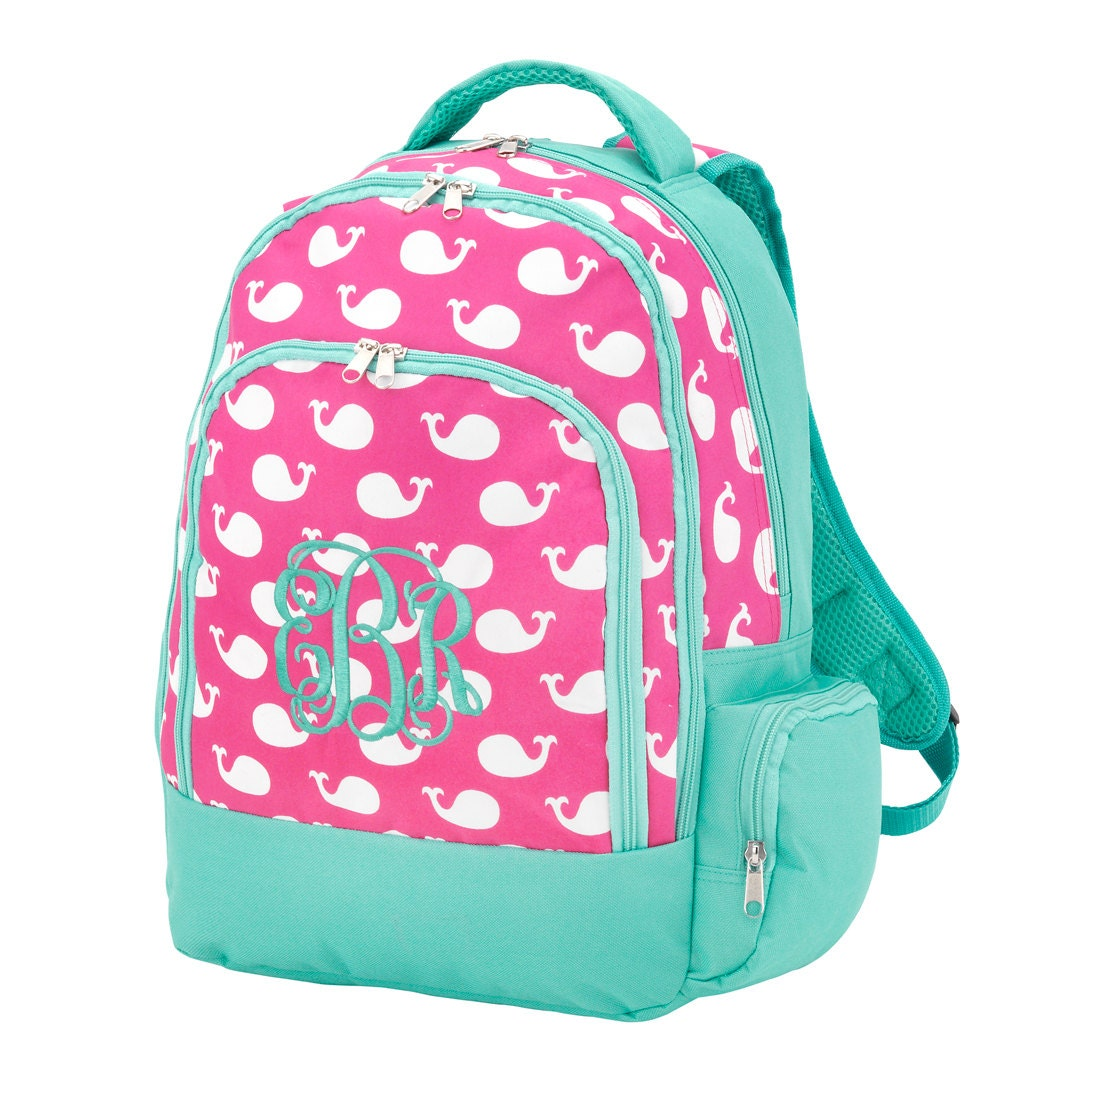 Personalized Backpack for girls monogram backpack